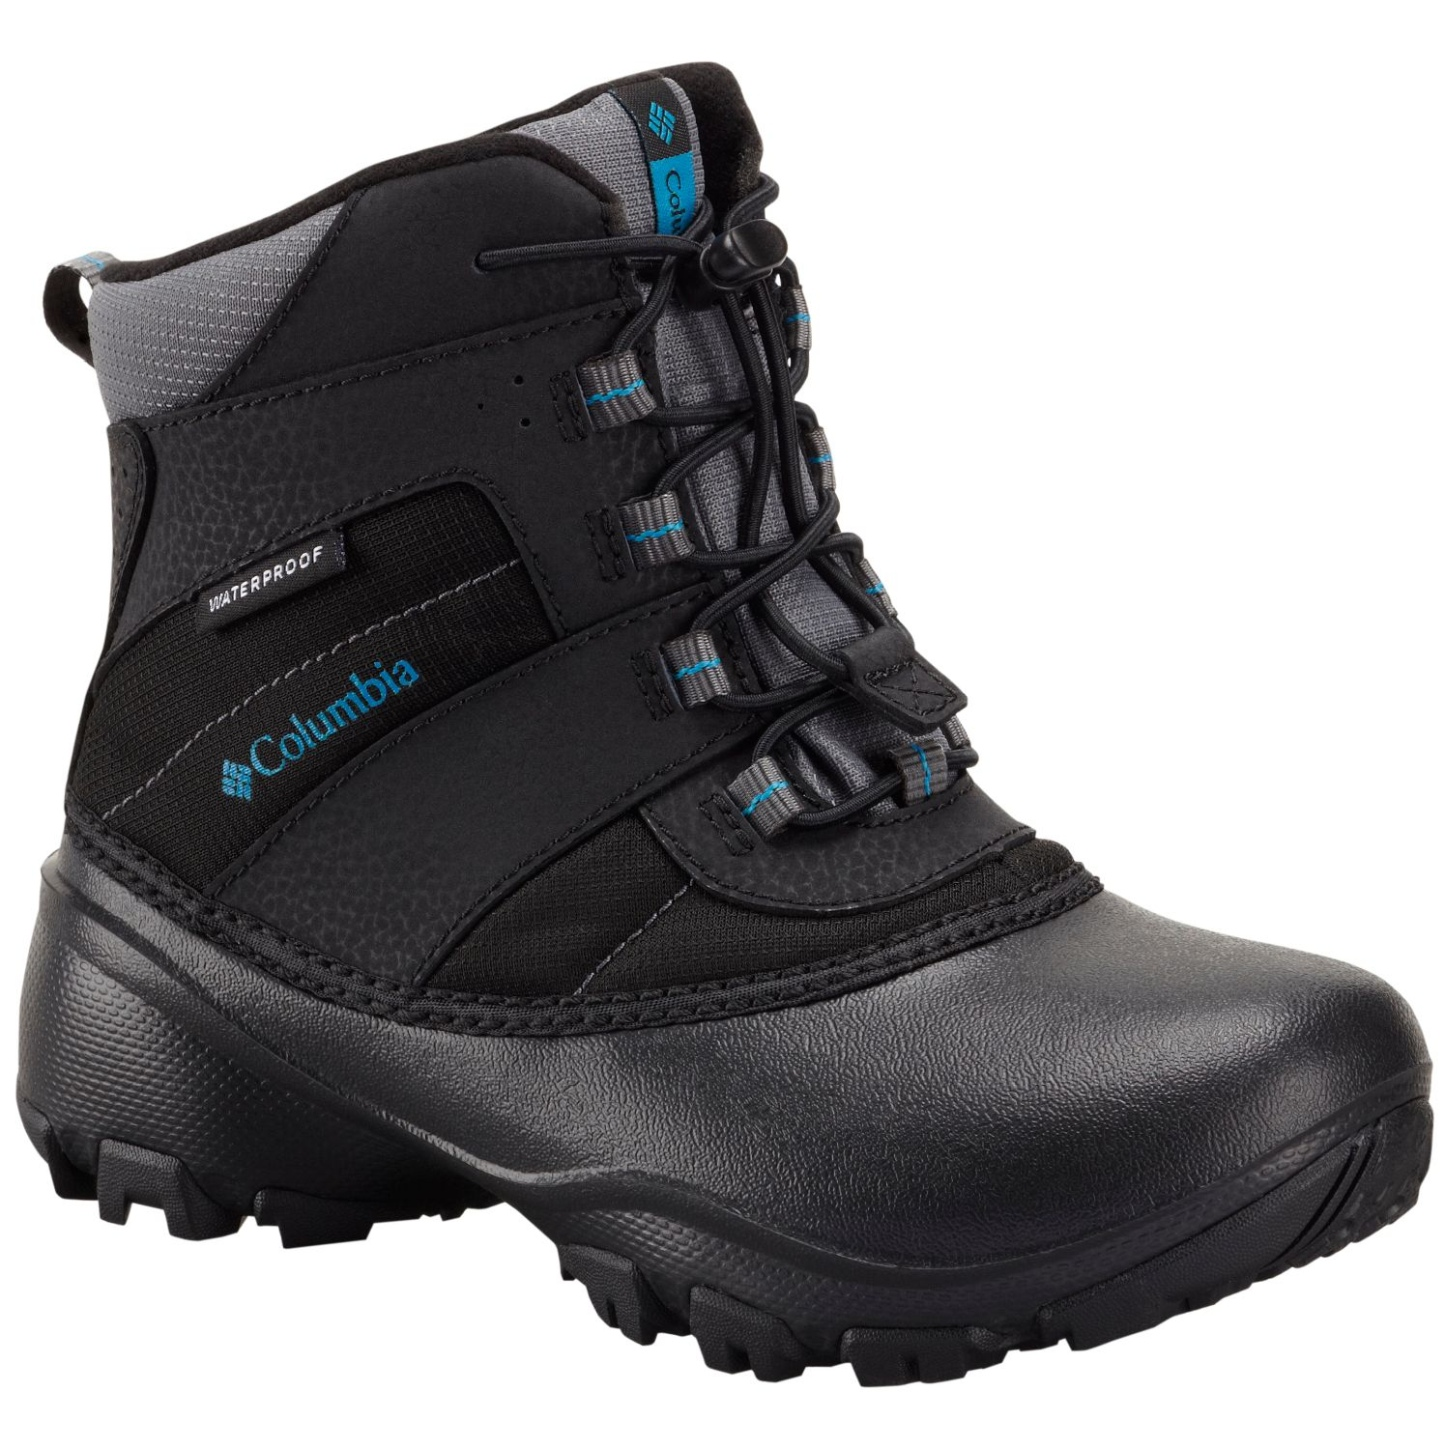 Columbia Boys' Rope Tow III Waterproof Snow Boot Black, Dark Compass-30